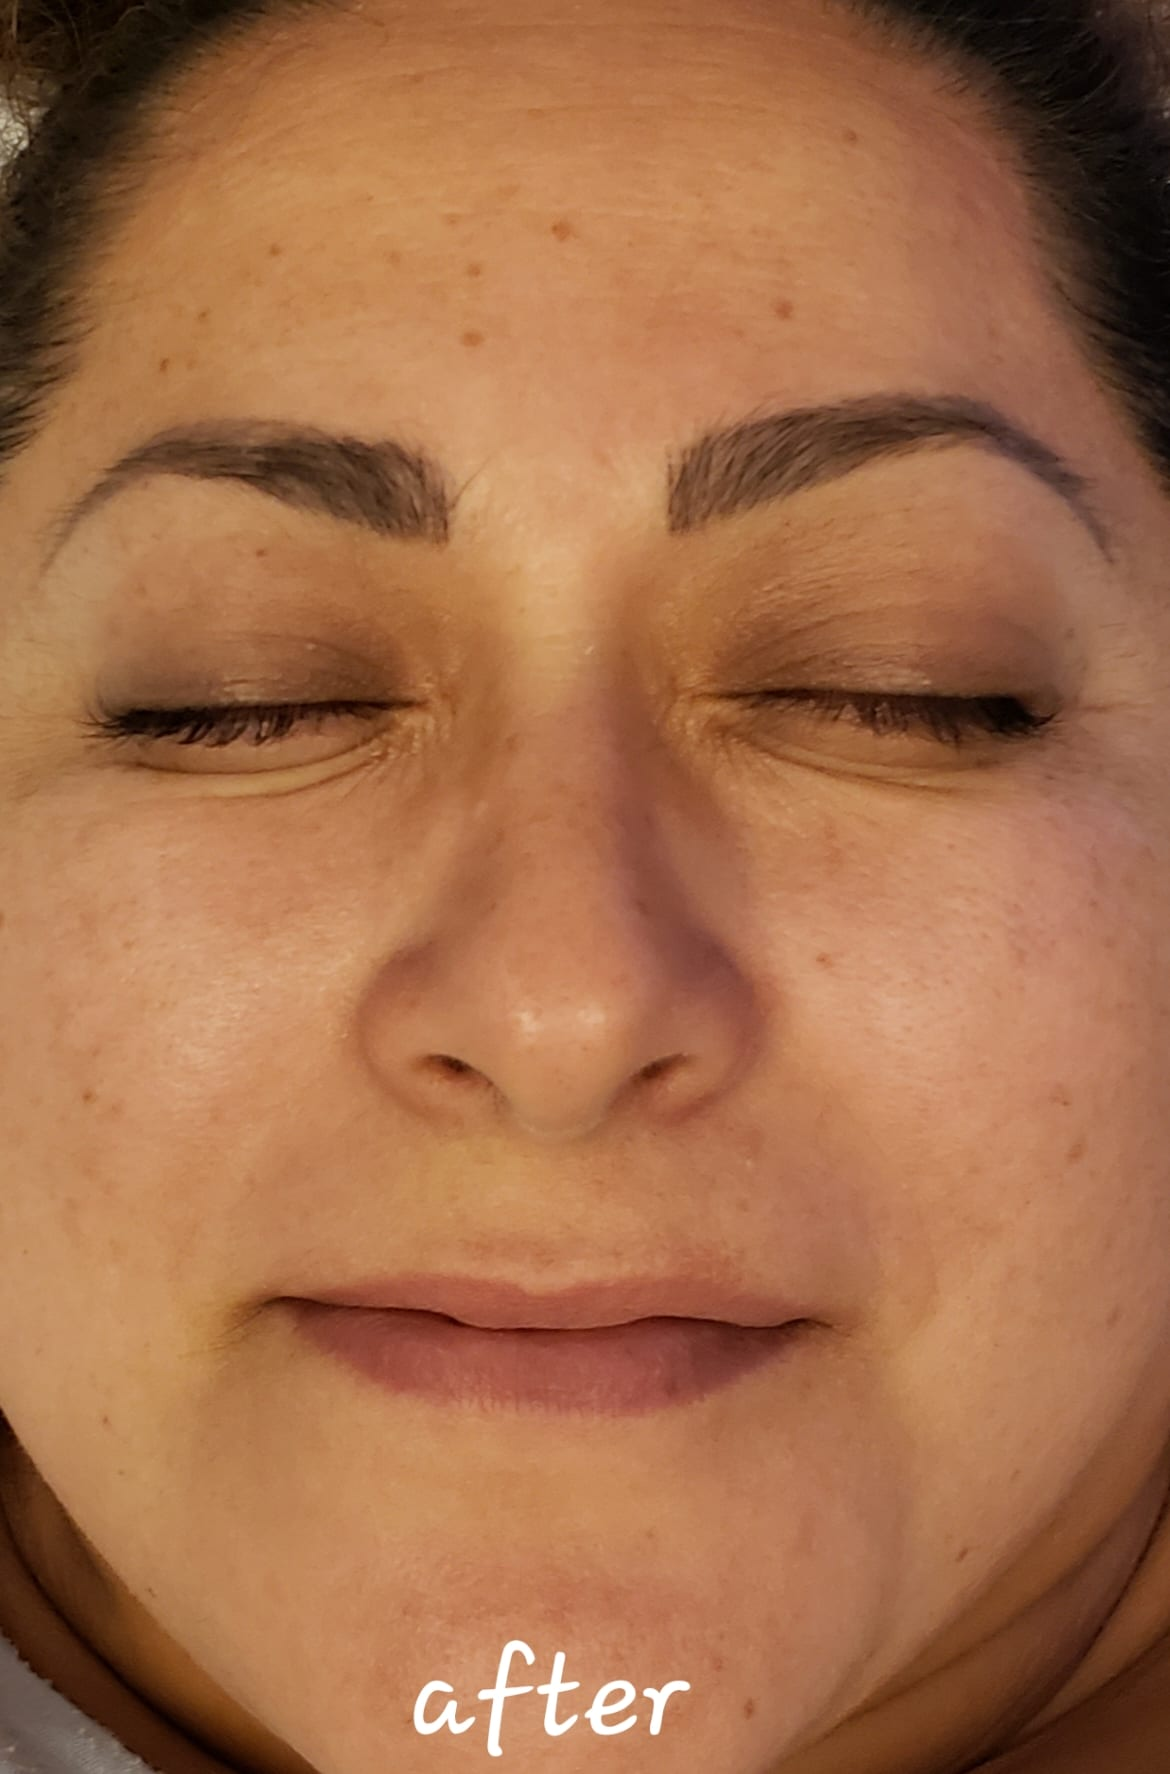 Hydrafacial at Joules Medical Aesthetics: See the amazing difference that can be made with a custom treatment plan from Joules Medical Aesthetics in Plano and Southlake